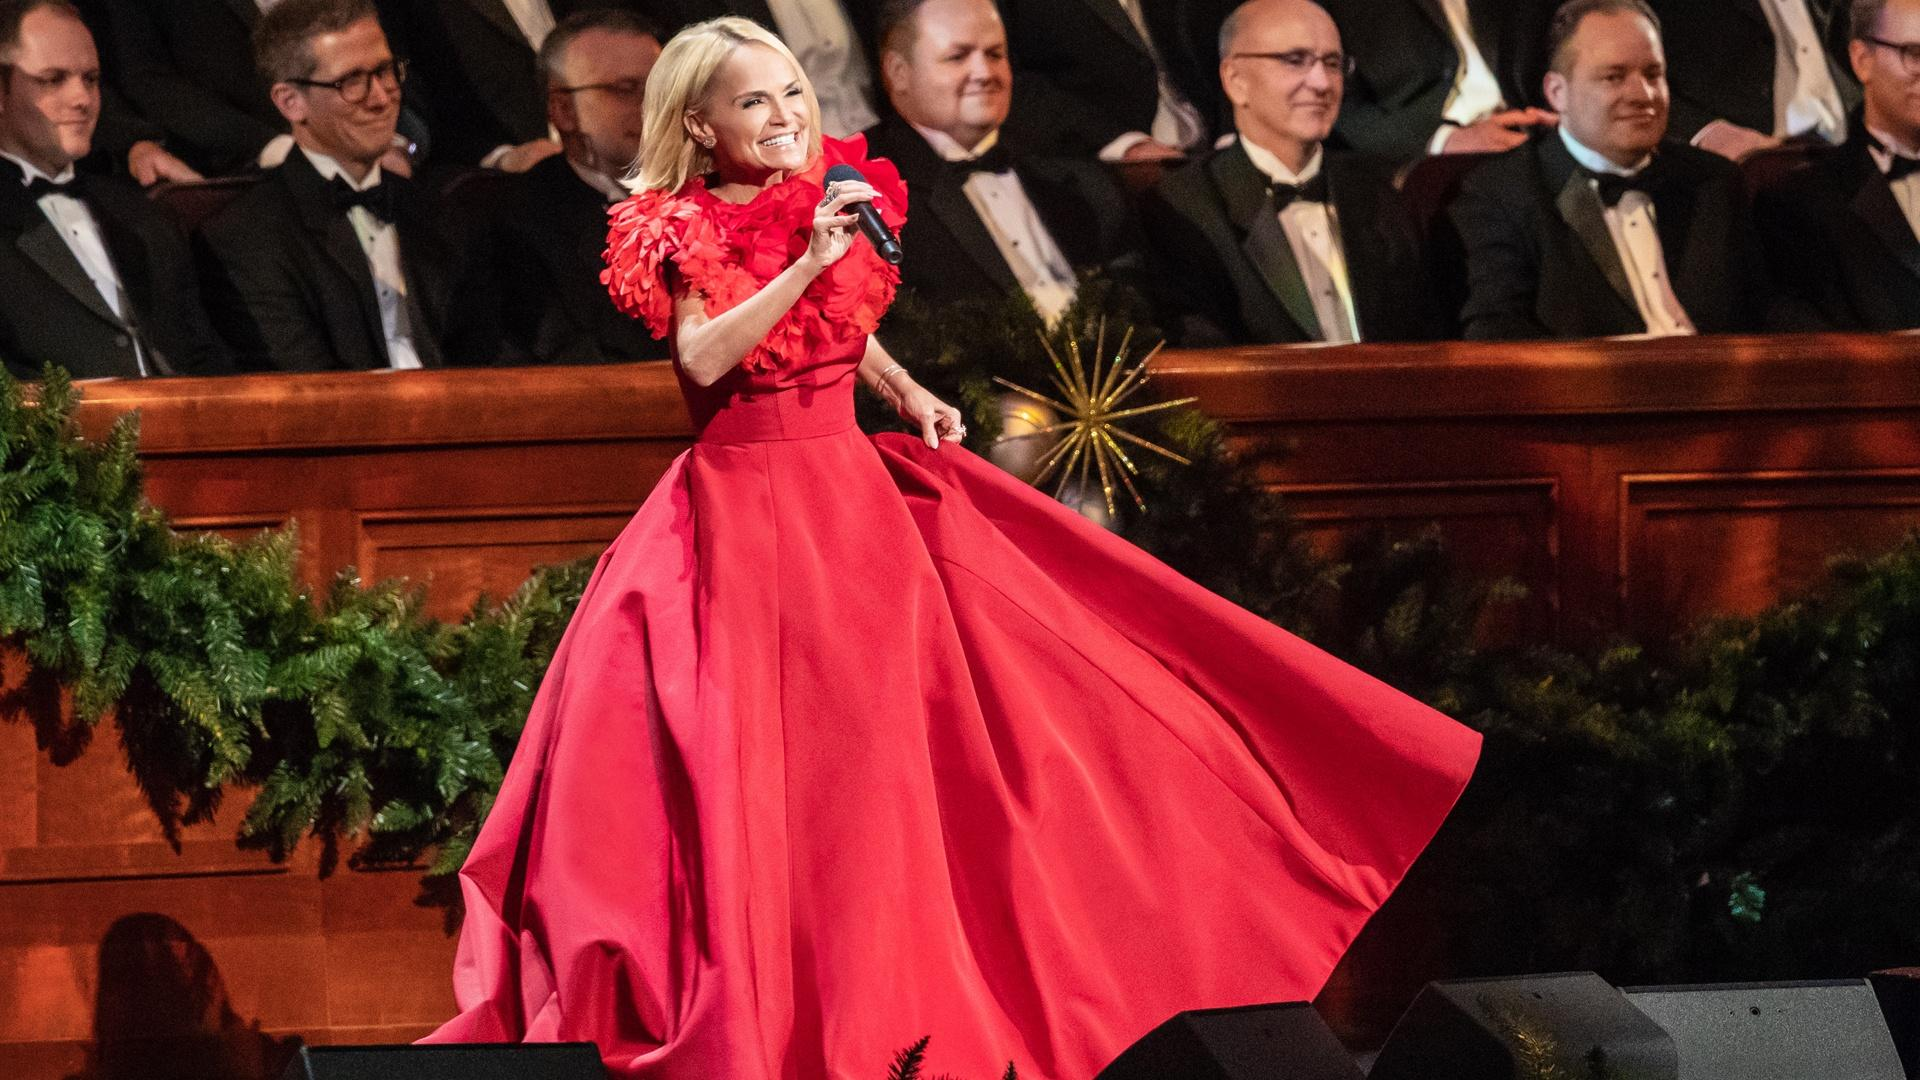 When Can I Watch Christmas With Tabernacle Choir 2021 Christmas With The Tabernacle Choir Watch